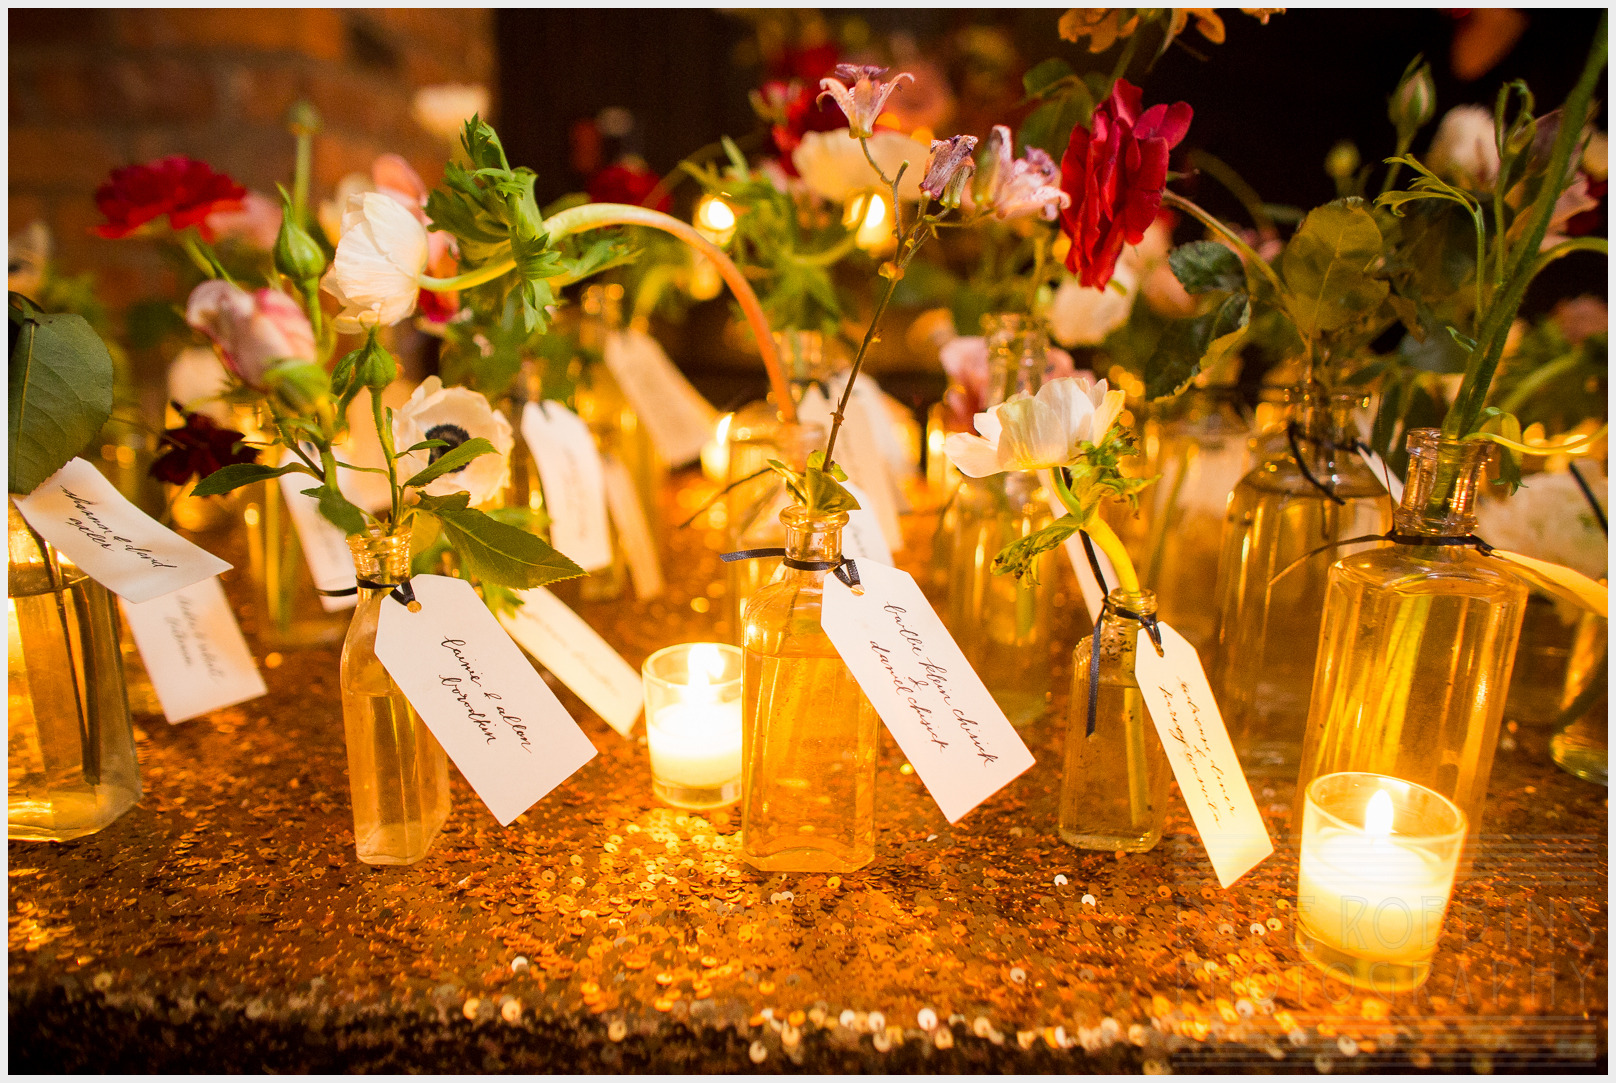 Floral arrangements were created by  Nicolette Camille